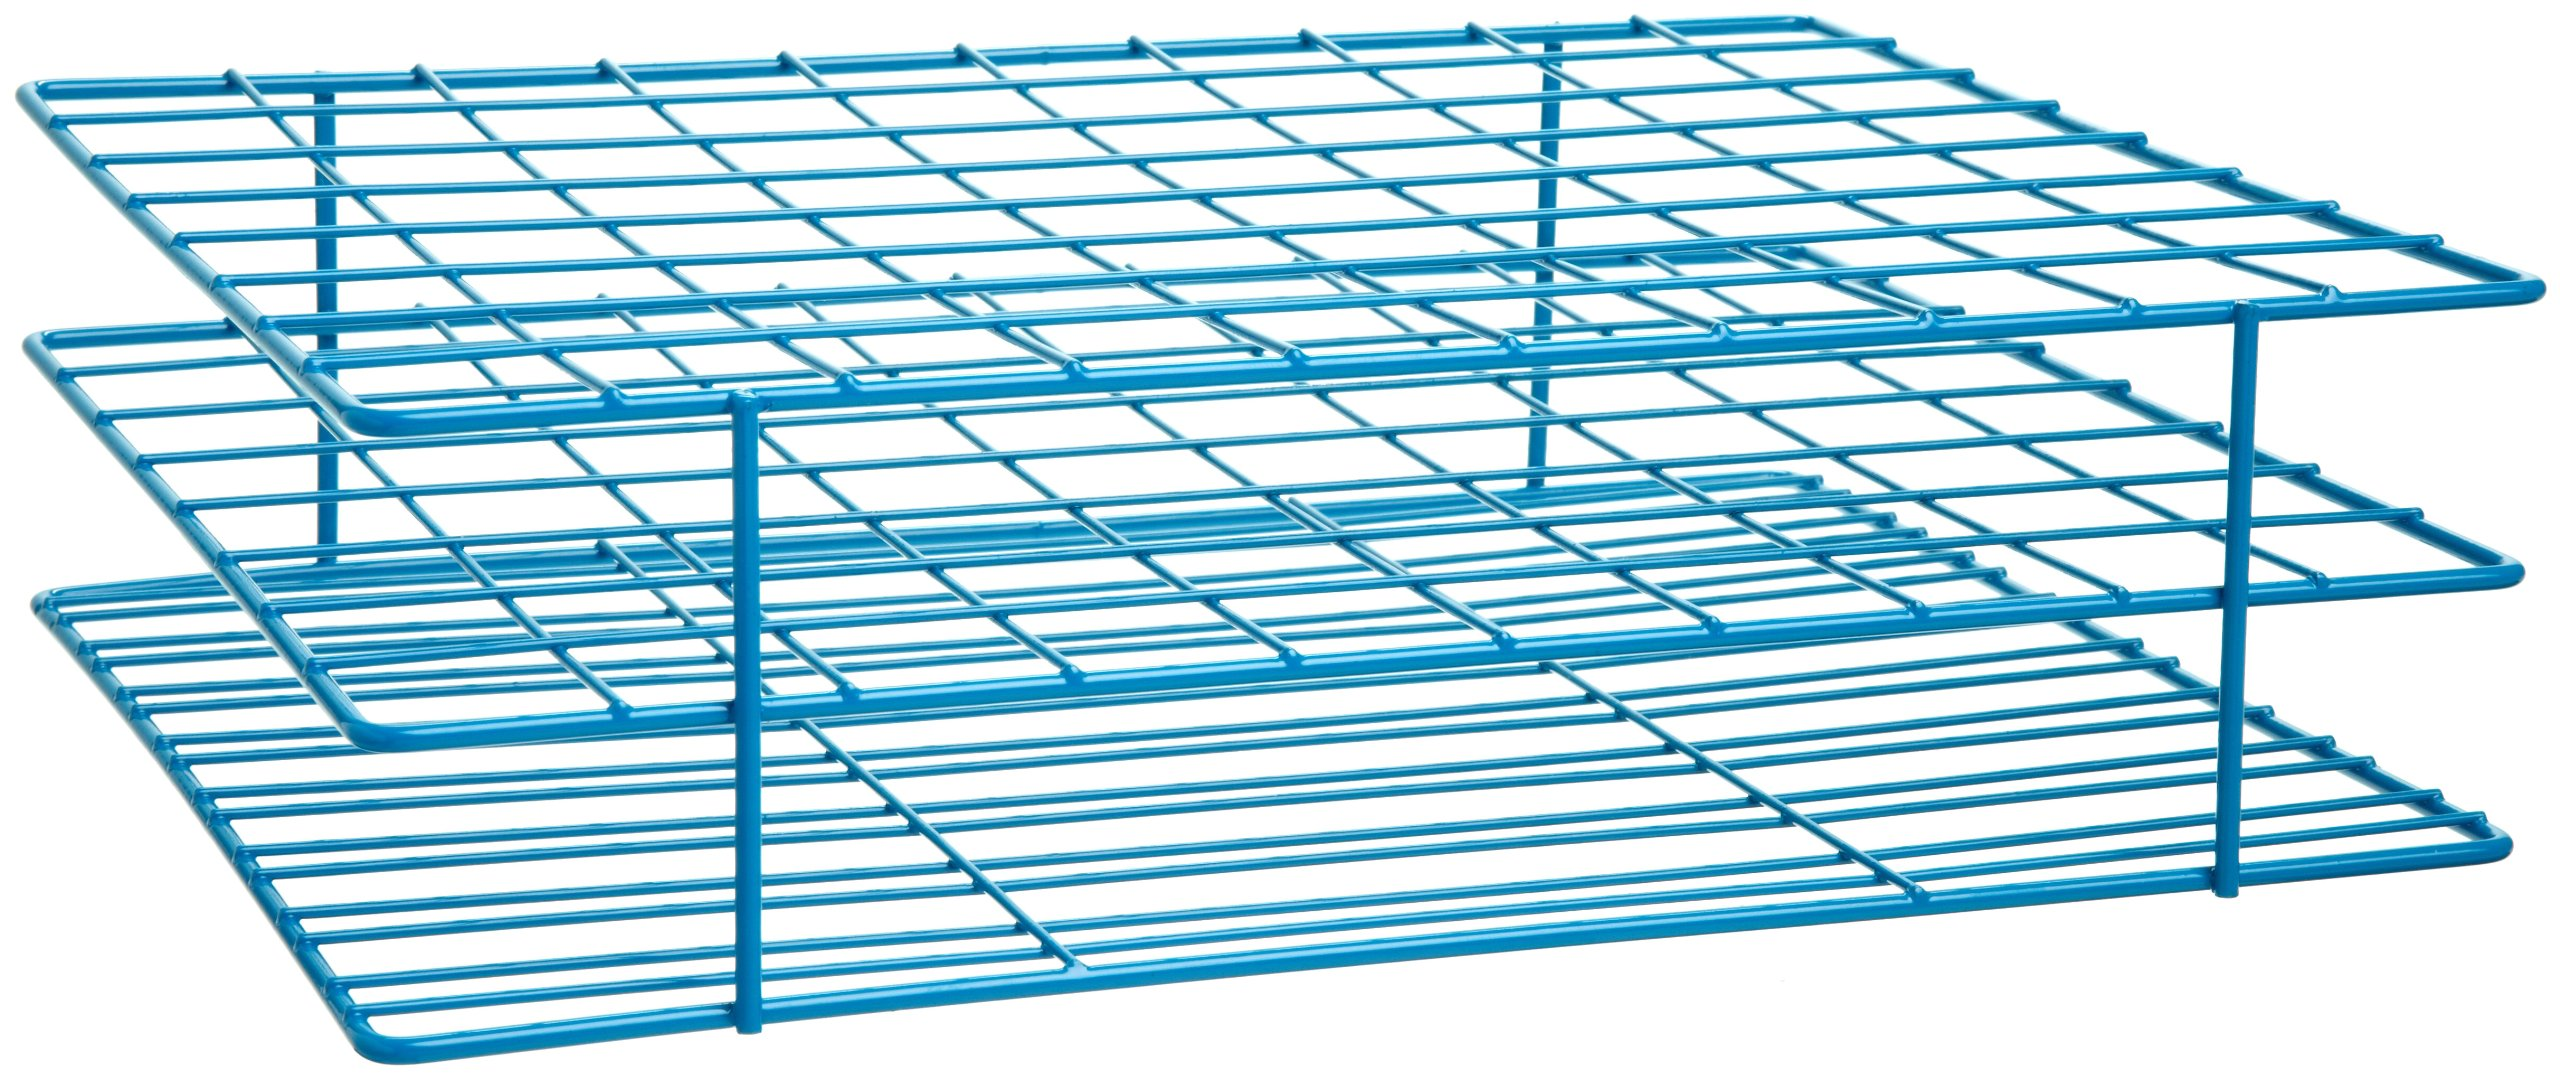 Bel-Art F18773-0001 Poxygrid Test Tube Rack; 20-25mm, 80 Places, 11⁹/₁₆ x 9⁹/₁₆ x 3¹/₄ in., Blue